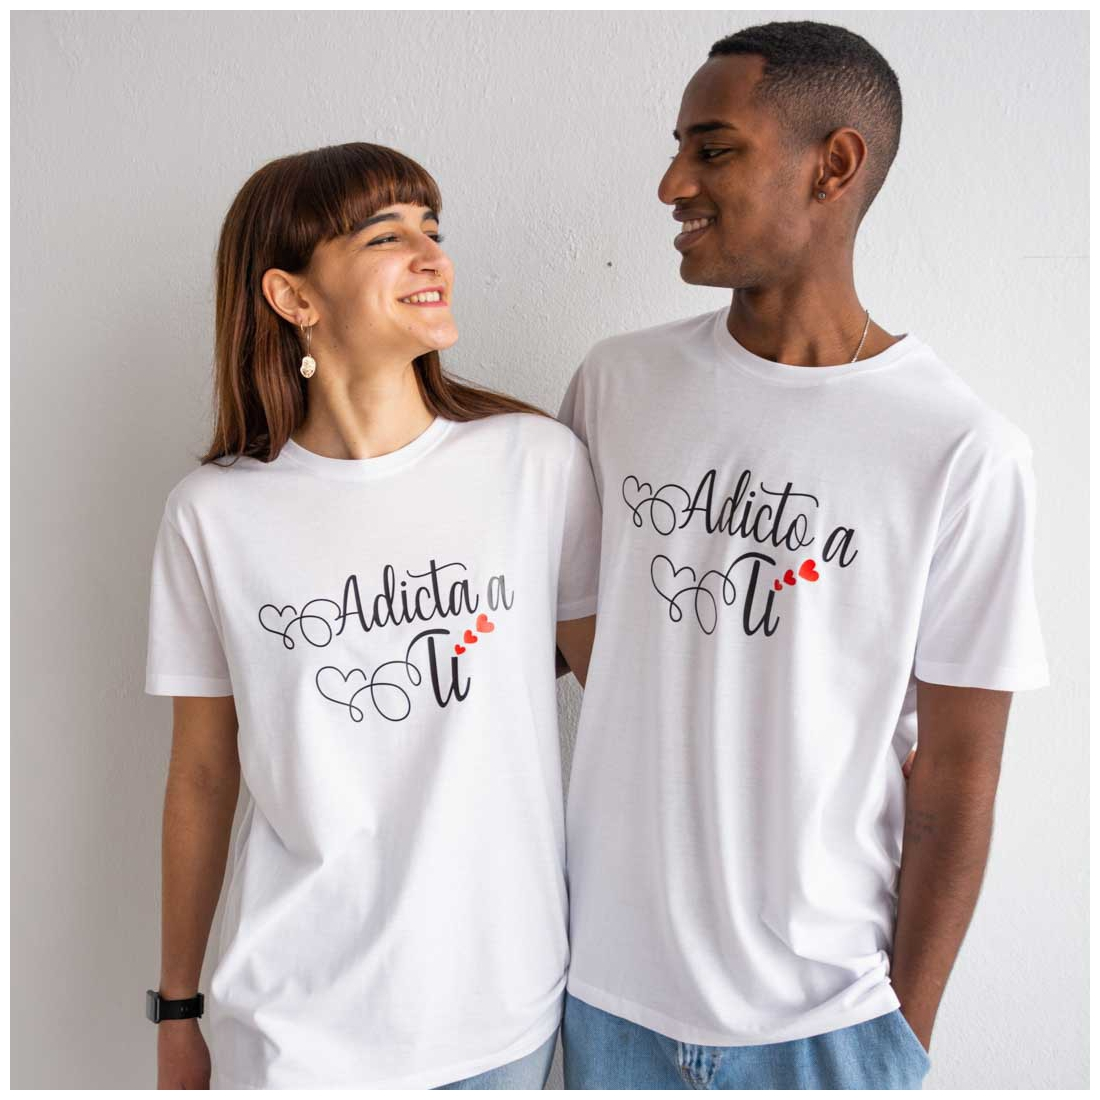 Addicted to you T-shirt